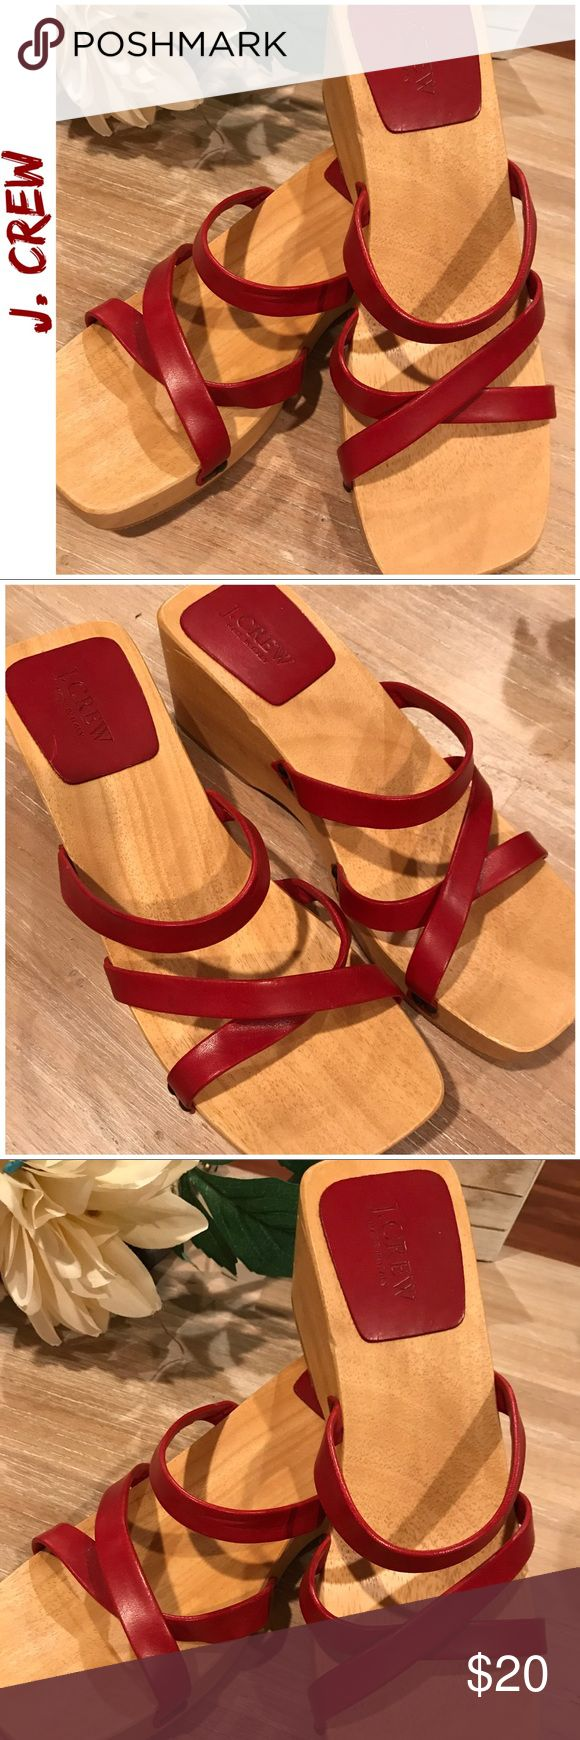 J. Crew Red Leather Wooden Sandal Clogs- Amazing! I fell in love with these the instant I laid eyes on them. Although I am a size 8, I have a wide foot,  so to my dismay and after months of staring hopelessly at them , I have to say goodbye! I am happy to know that some lucky lady will snatch them up and be able to enjoy them. Authentic leather , REAL wood. Perfect wedge heel and there is still plenty of time to show off that pedicure! Some minuscule knicks in the wood but barely noticeable…